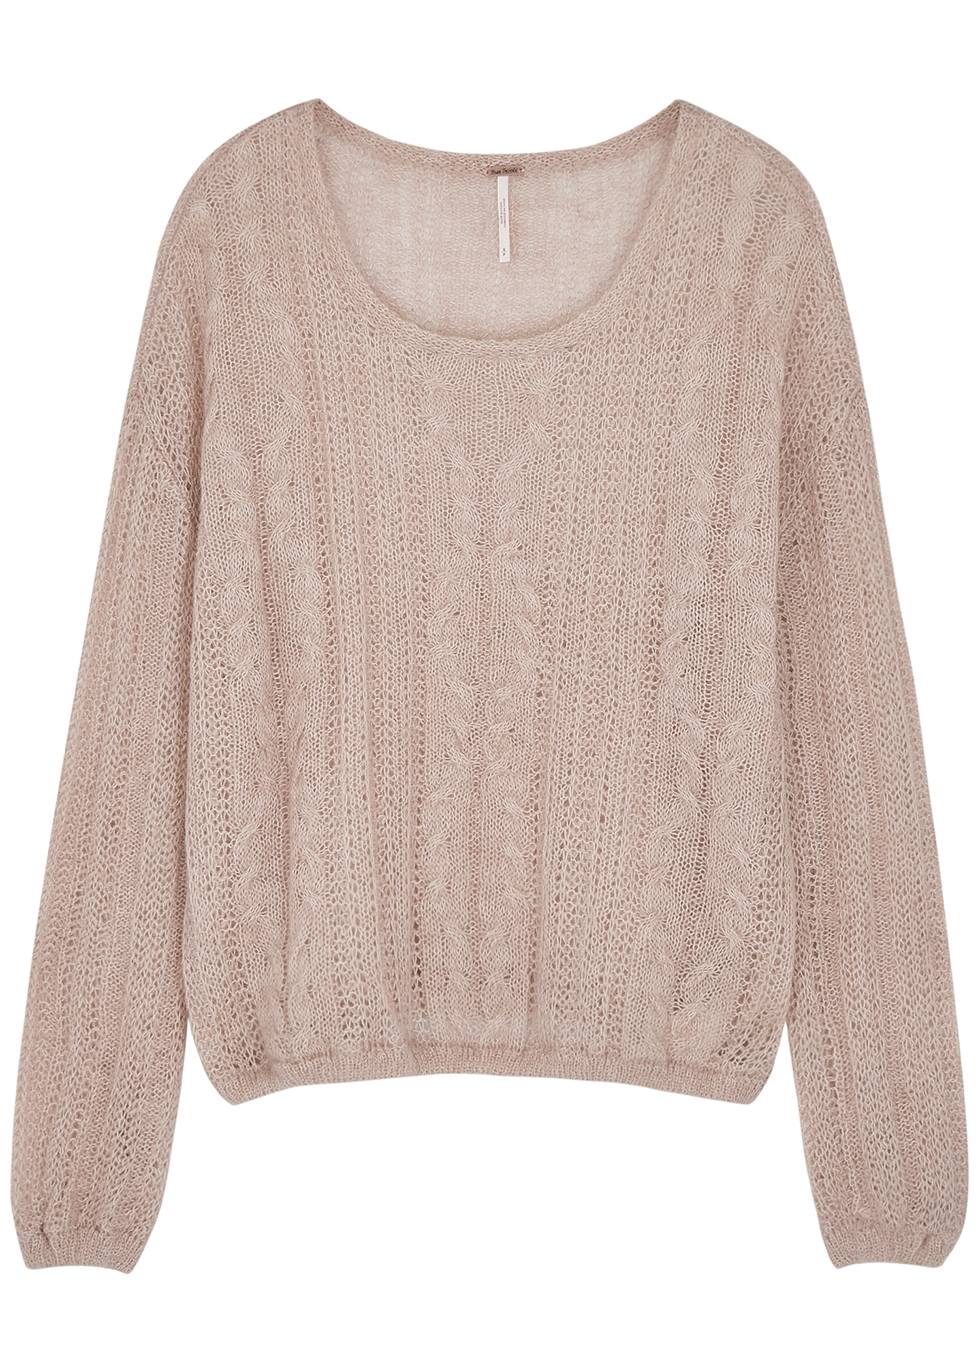 Angel pink open-knit jumper